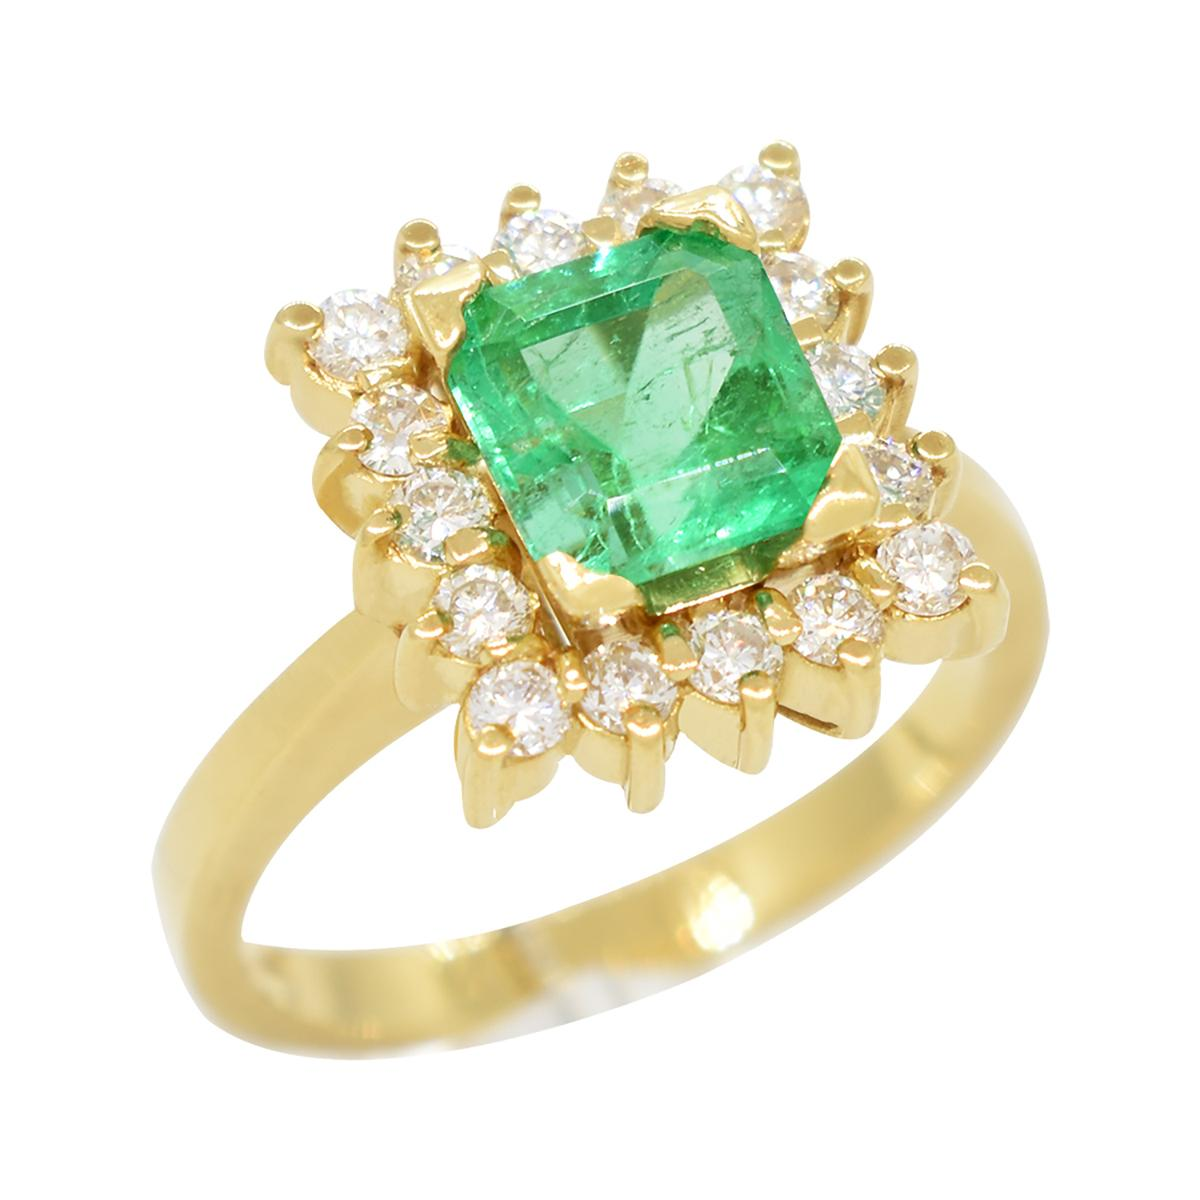 emerald-cut-emerald-set-in-18k-gold-ring-with-diamond-halo-in-cocktail-ring-style